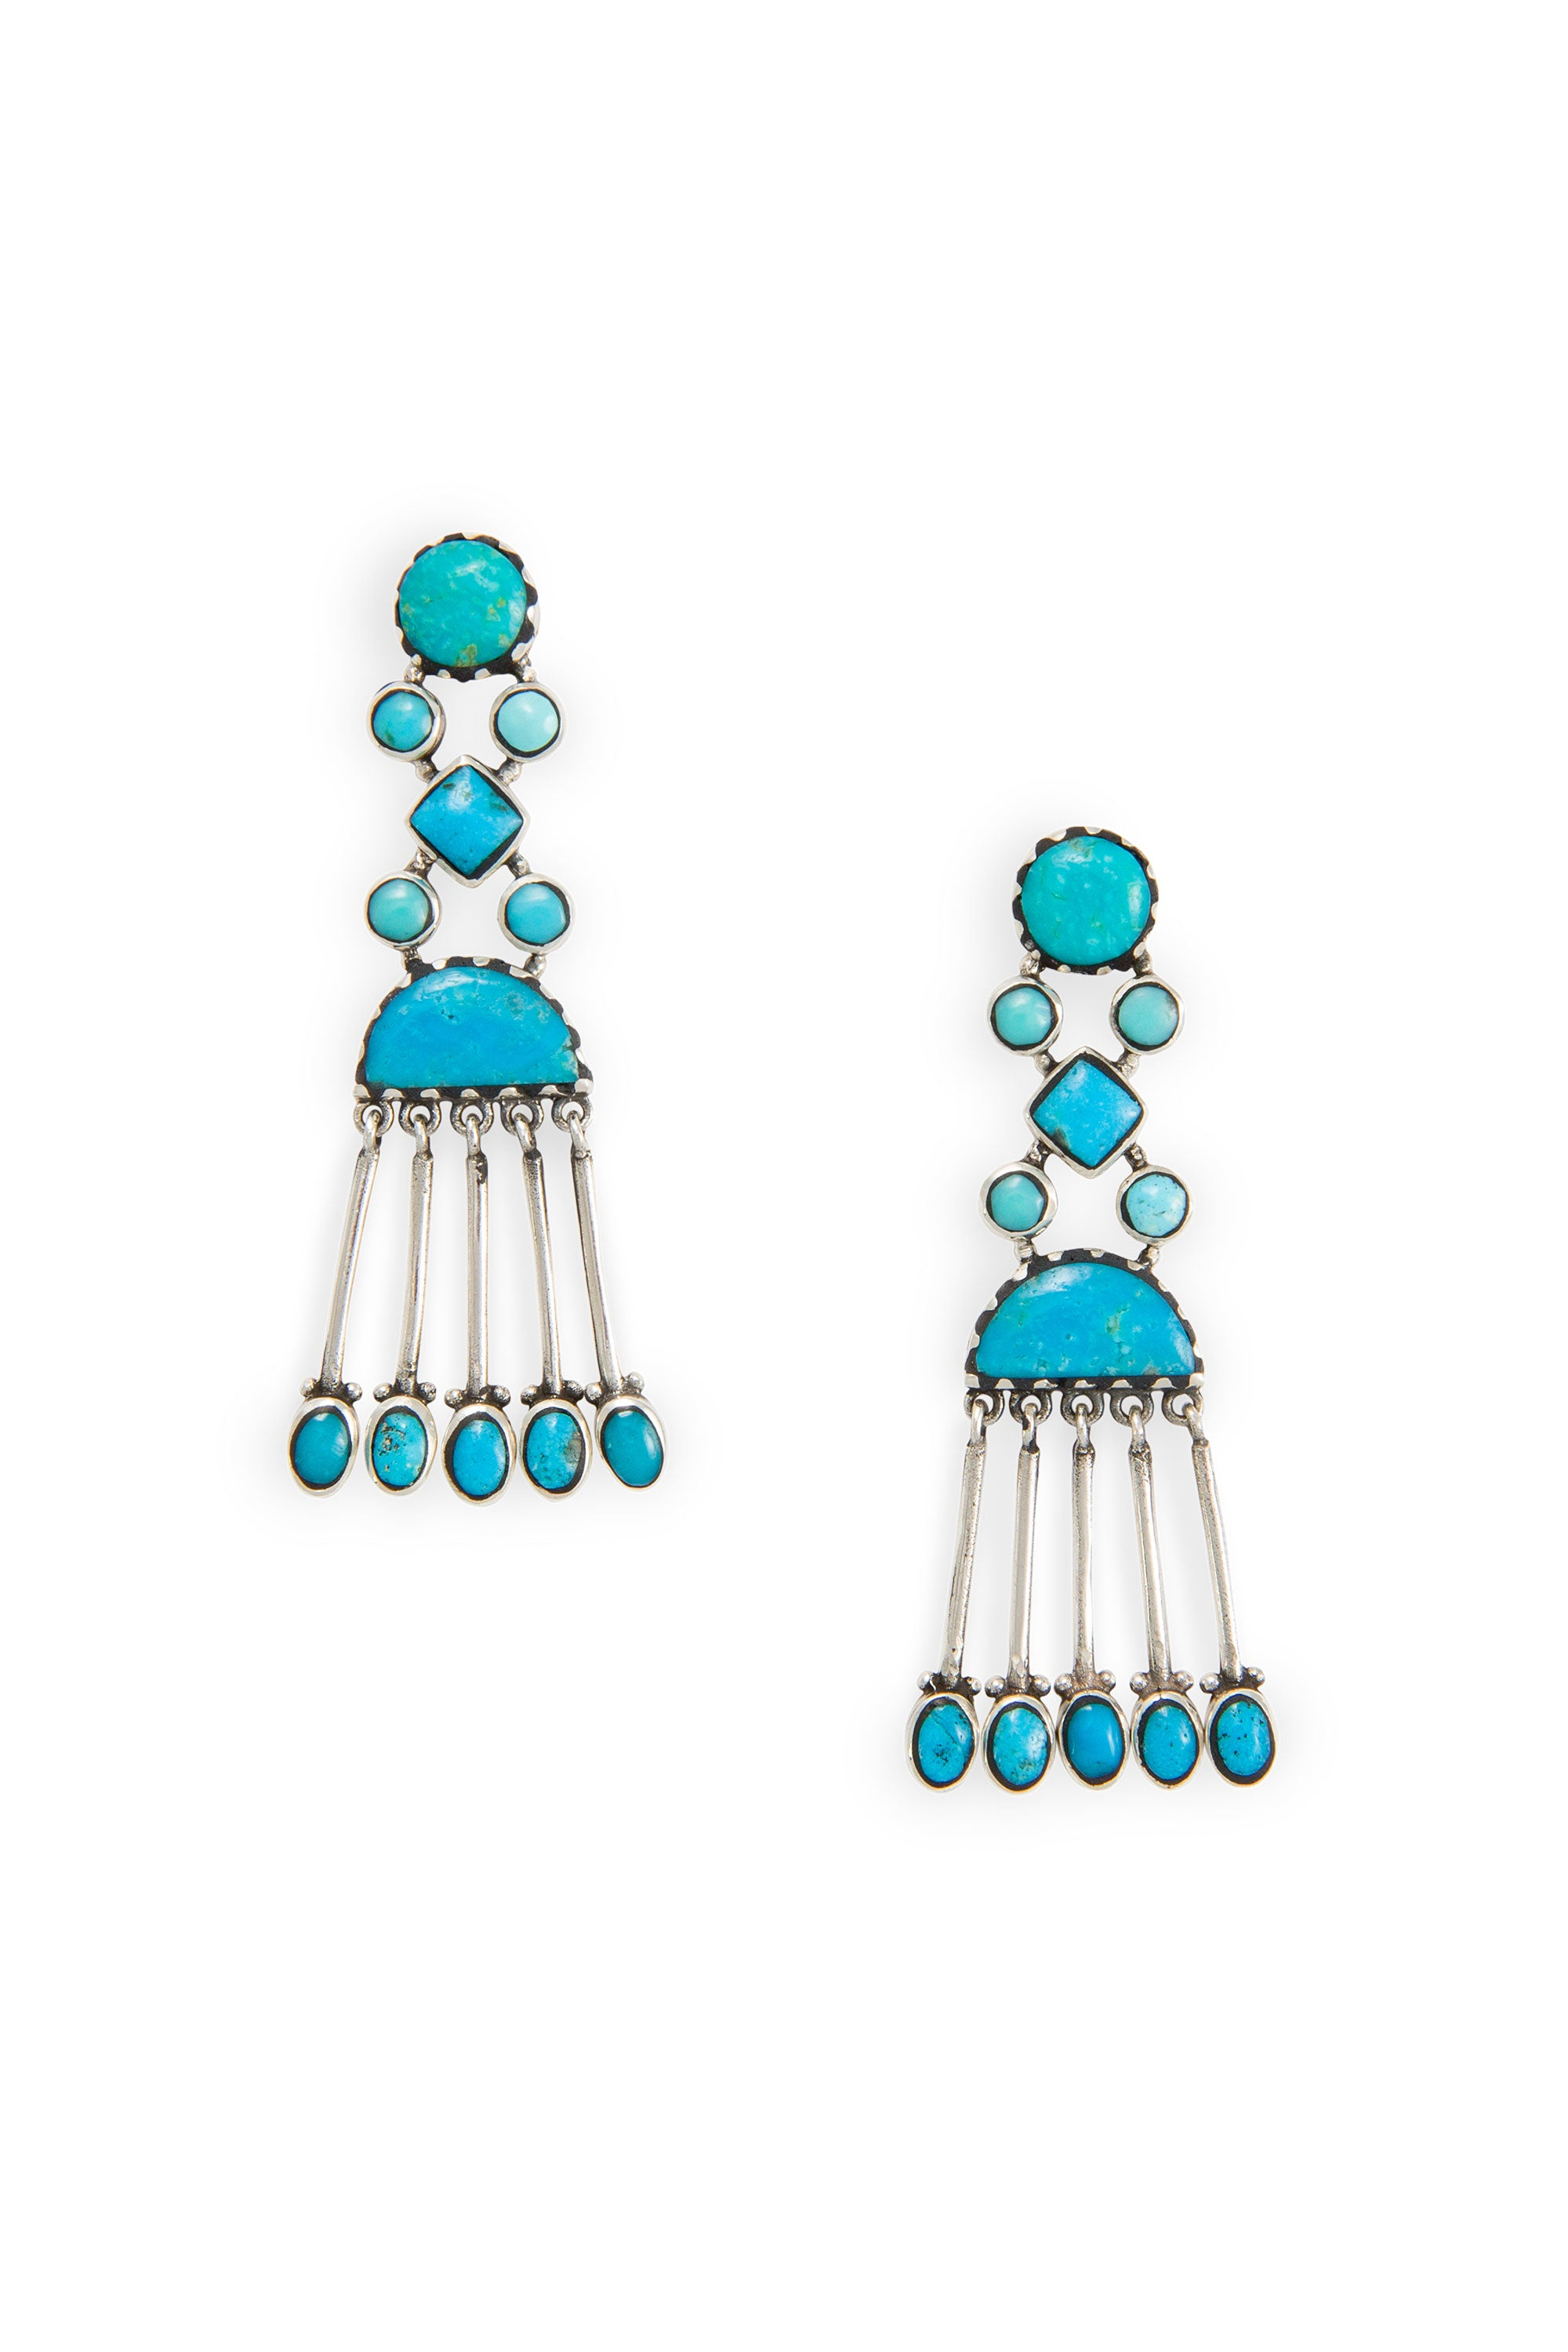 Earrings, Chandelier, Turquoise,  Thunderhead